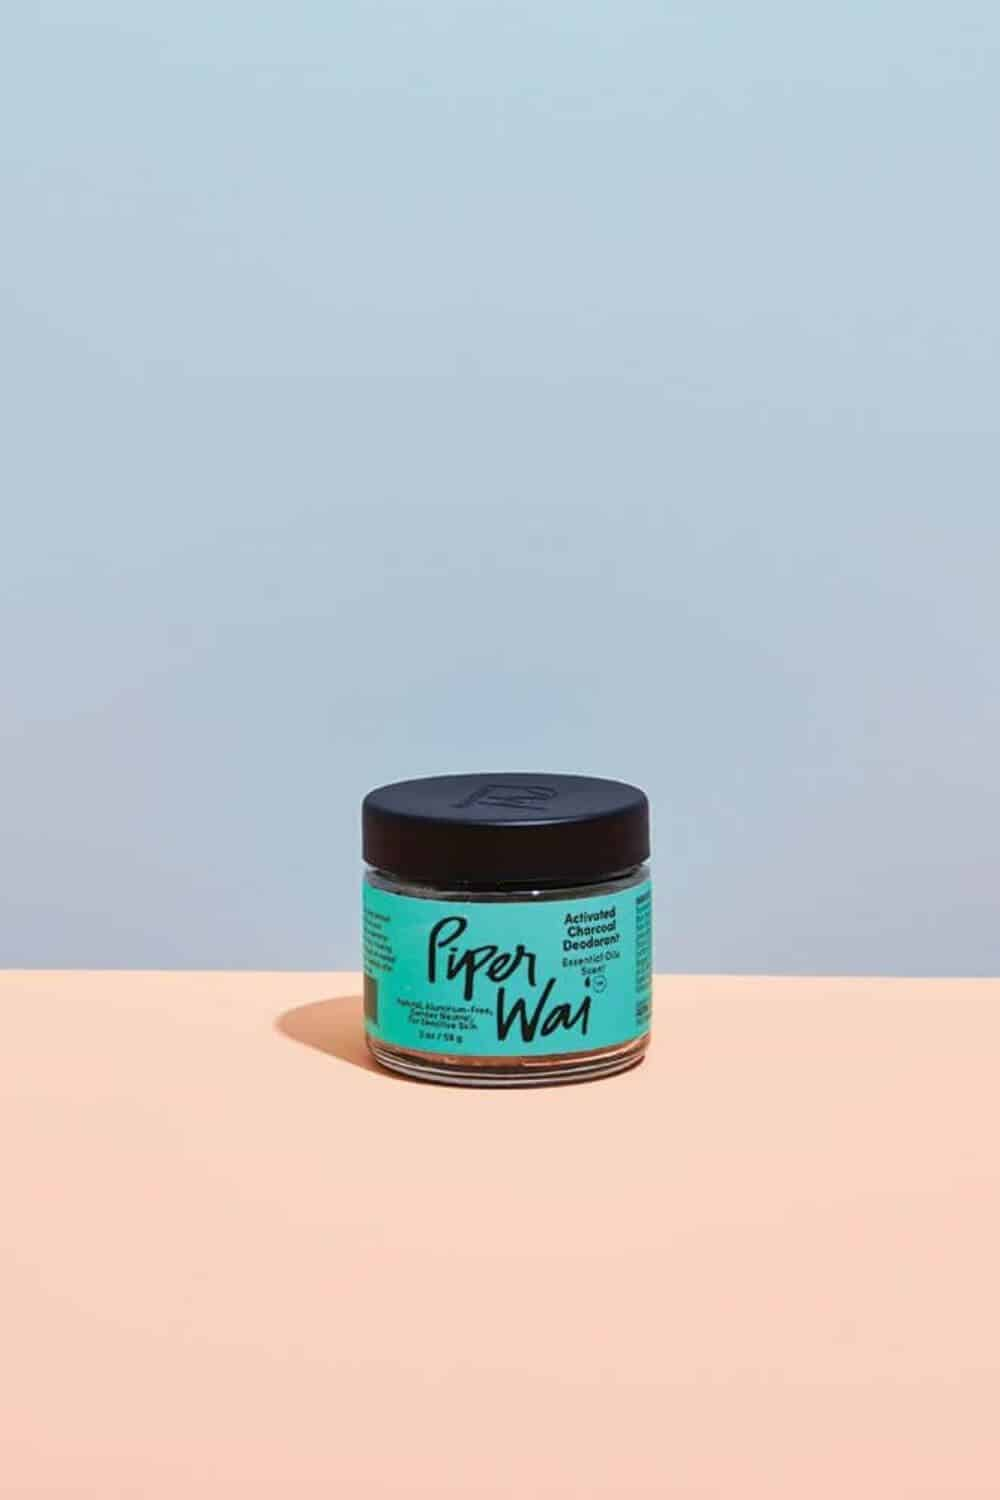 We're meant to sweat. So finding the best natural and environmentally friendly deodorant, one that really works and is actually natural is pretty important! Here's our list... Image by Piper Wai #environmentallfriendlydeodorant #sustainablejungle